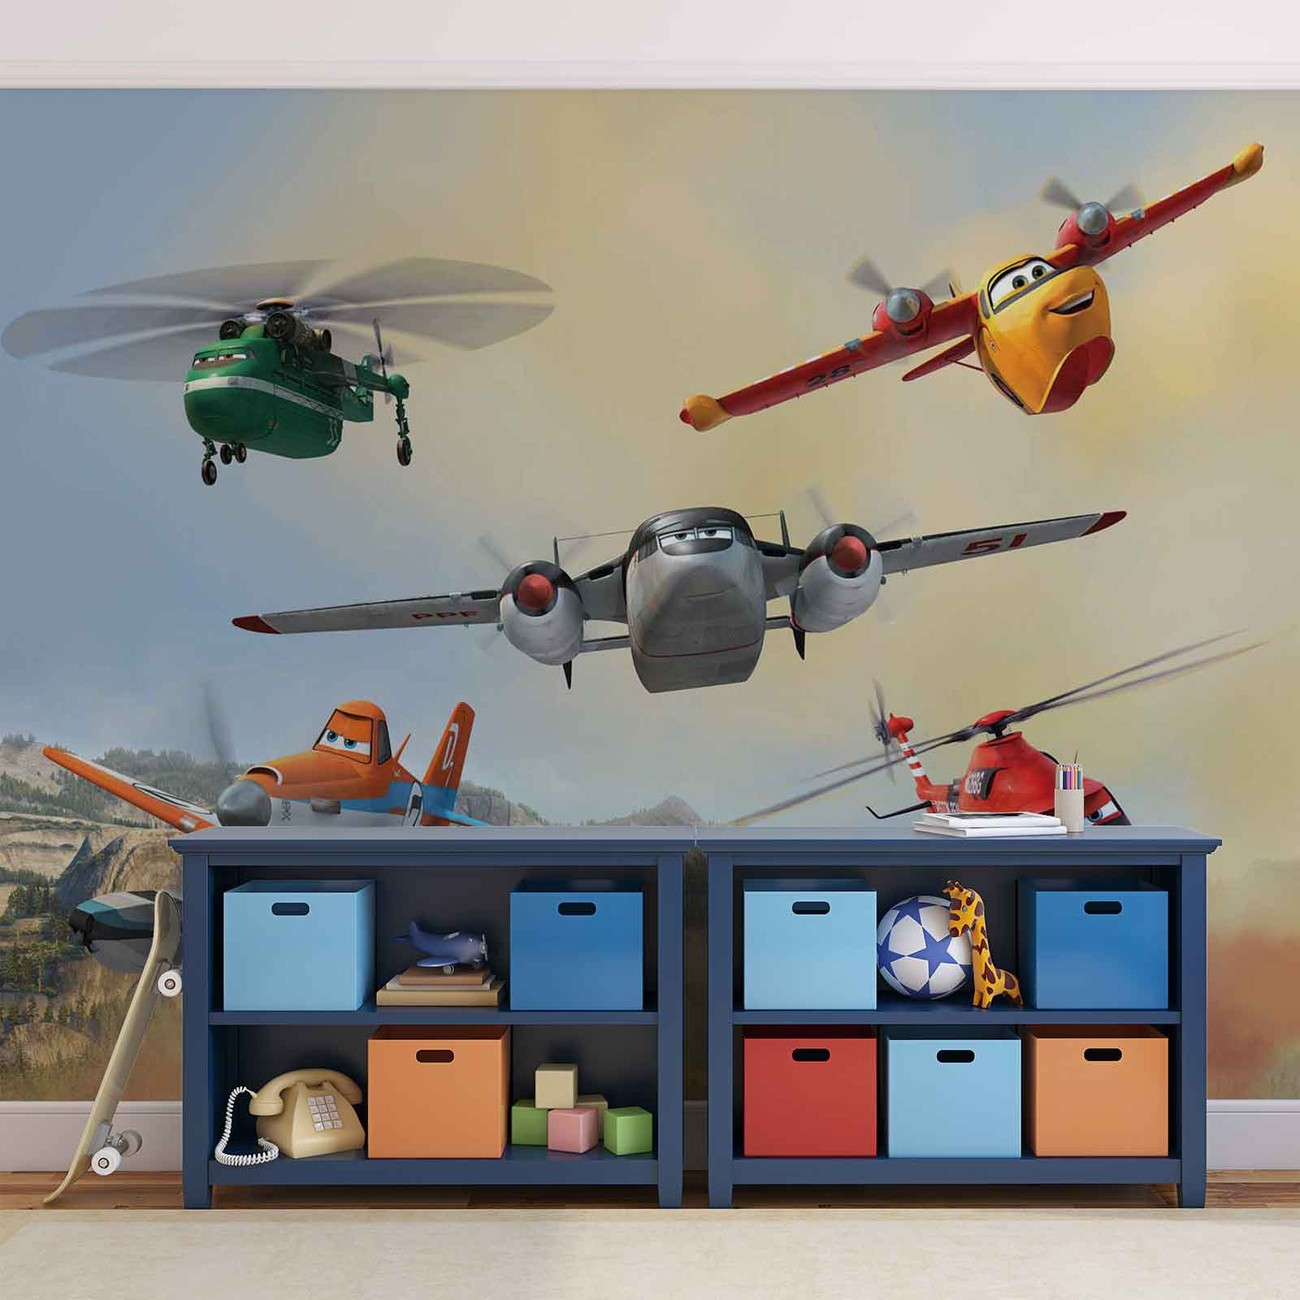 Disney planes dusty blade dipper cabbie wall paper mural for Disney planes wall mural